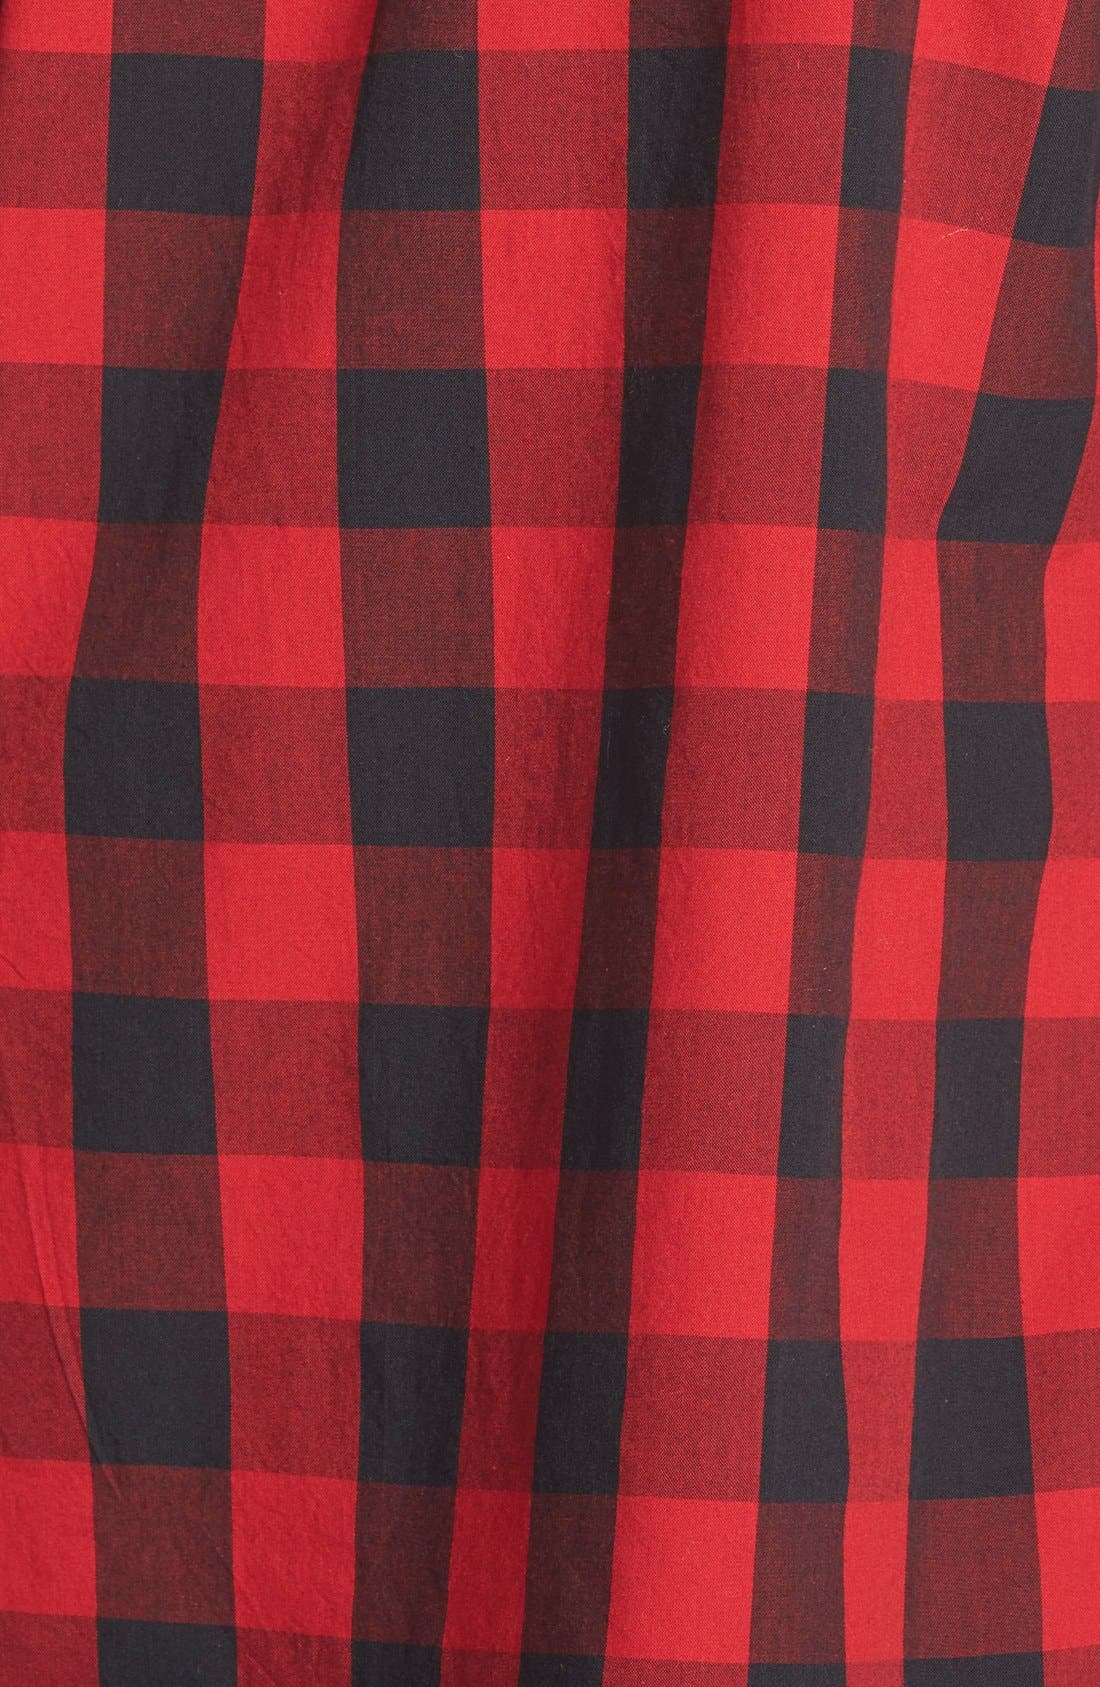 Buffalo Check Cotton Shirt,                             Alternate thumbnail 3, color,                             Red Multi